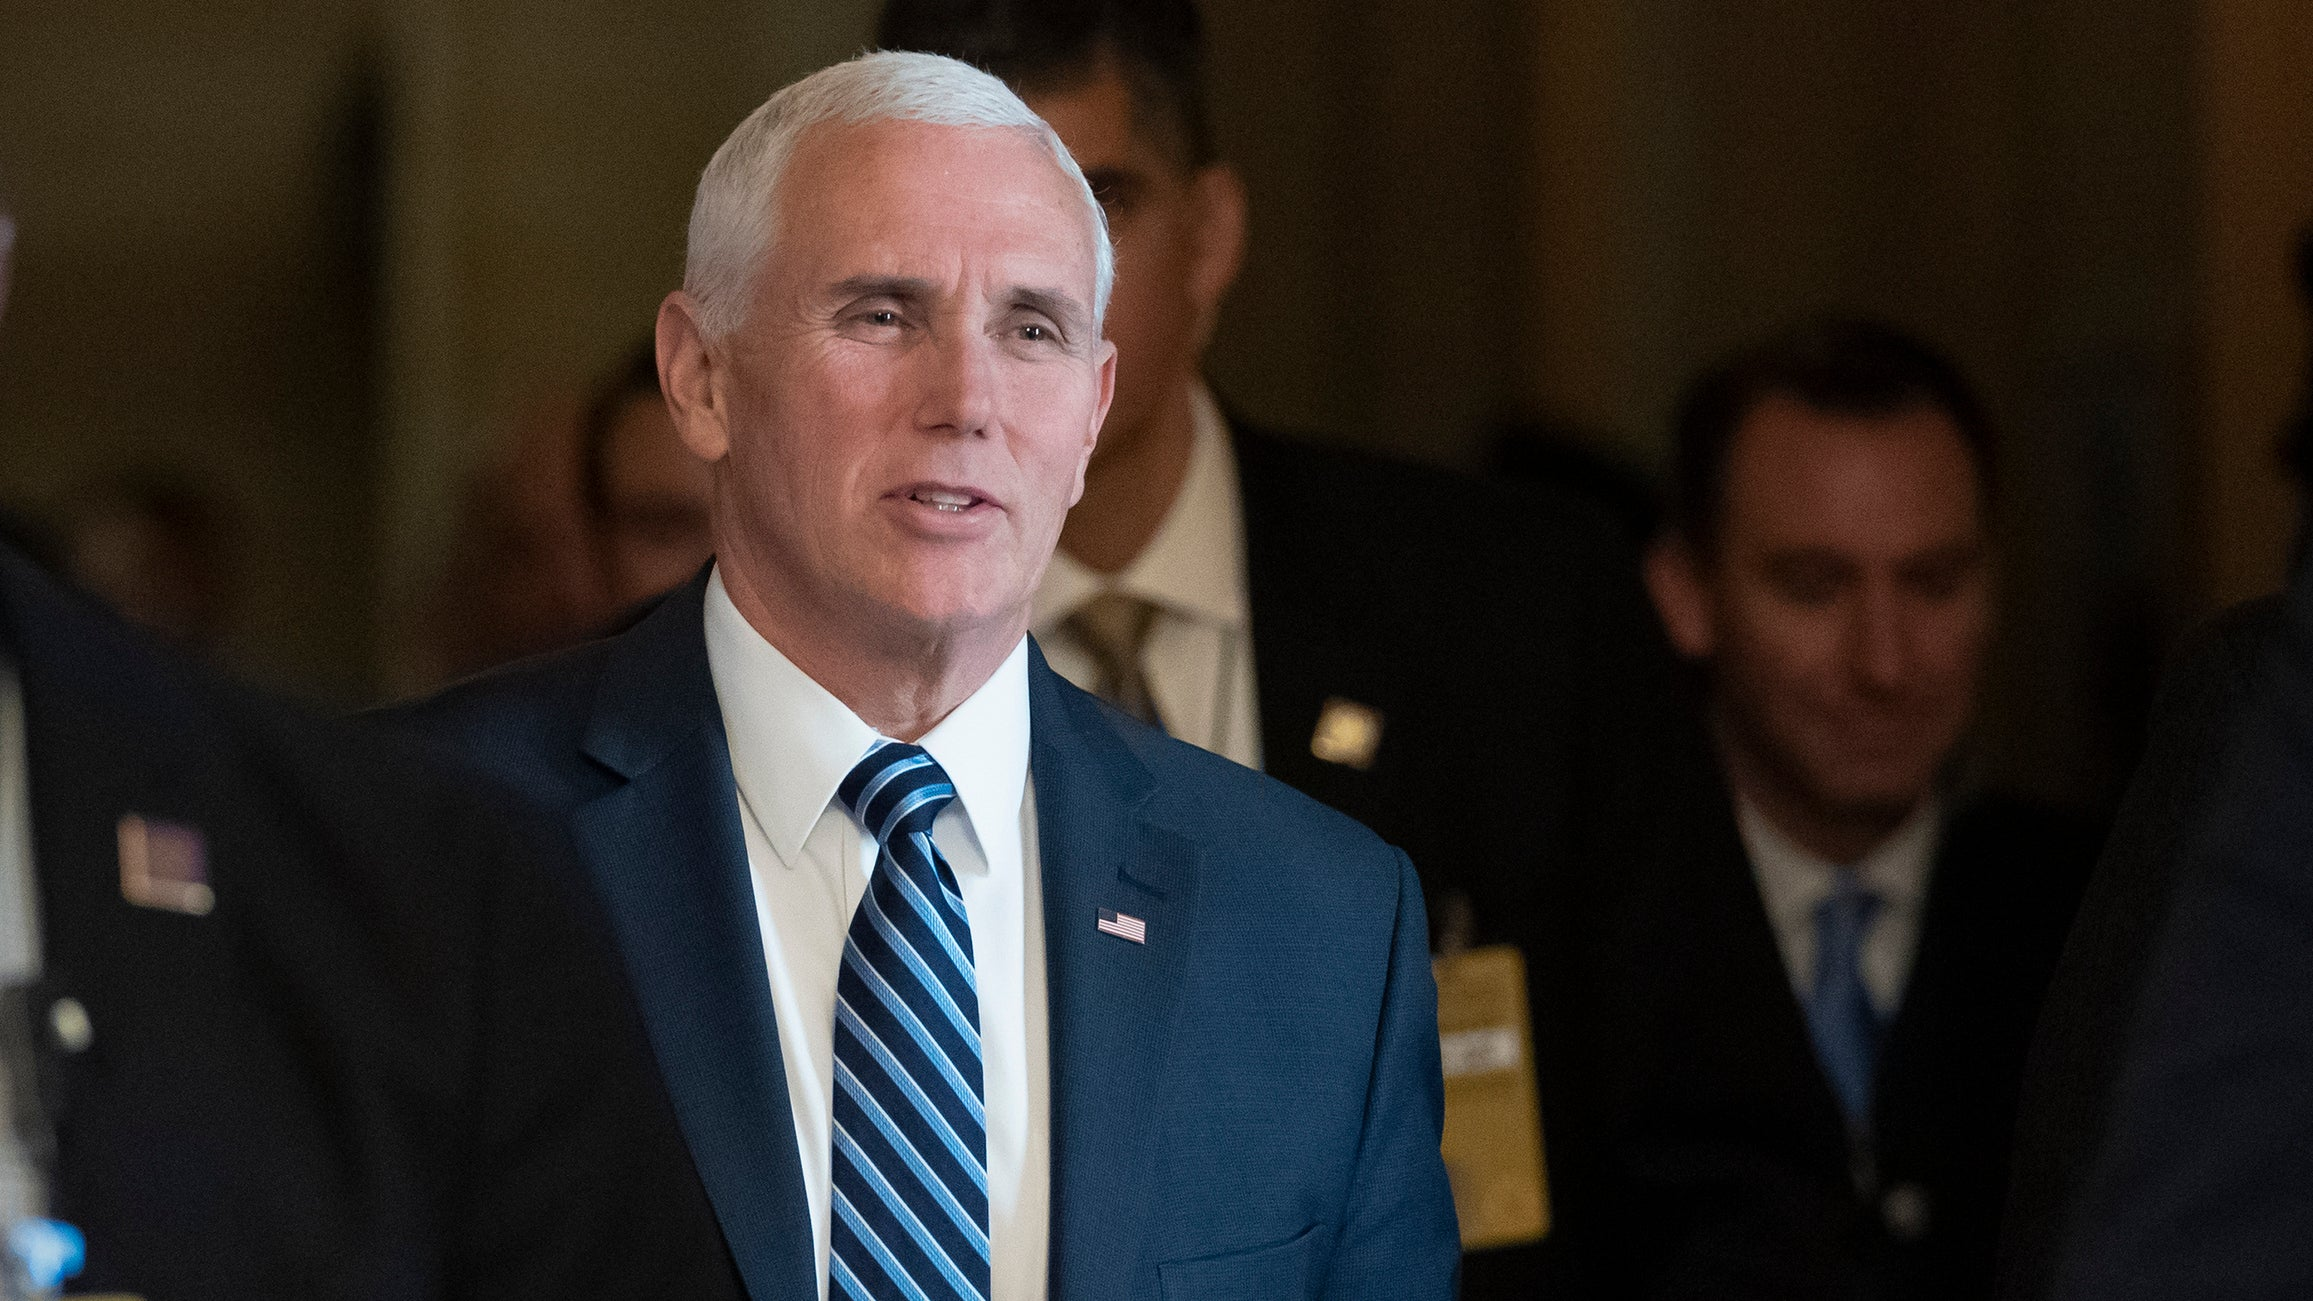 The FBI Is Looking Into A Mike Pence Poseur That Texted Republican Members Of Congress